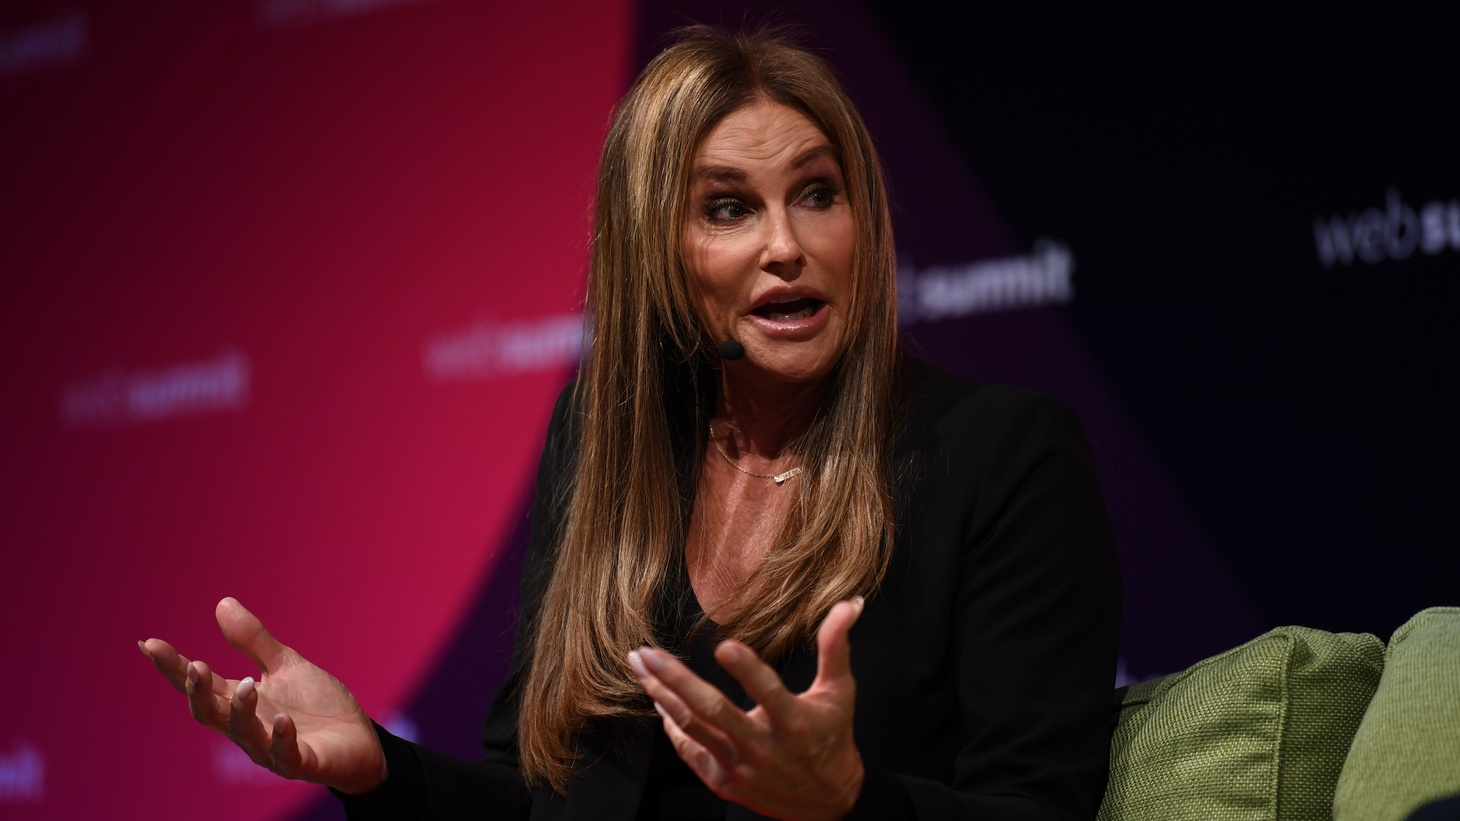 Caitlyn Jenner at Web Summit 2017 in Lisbon.